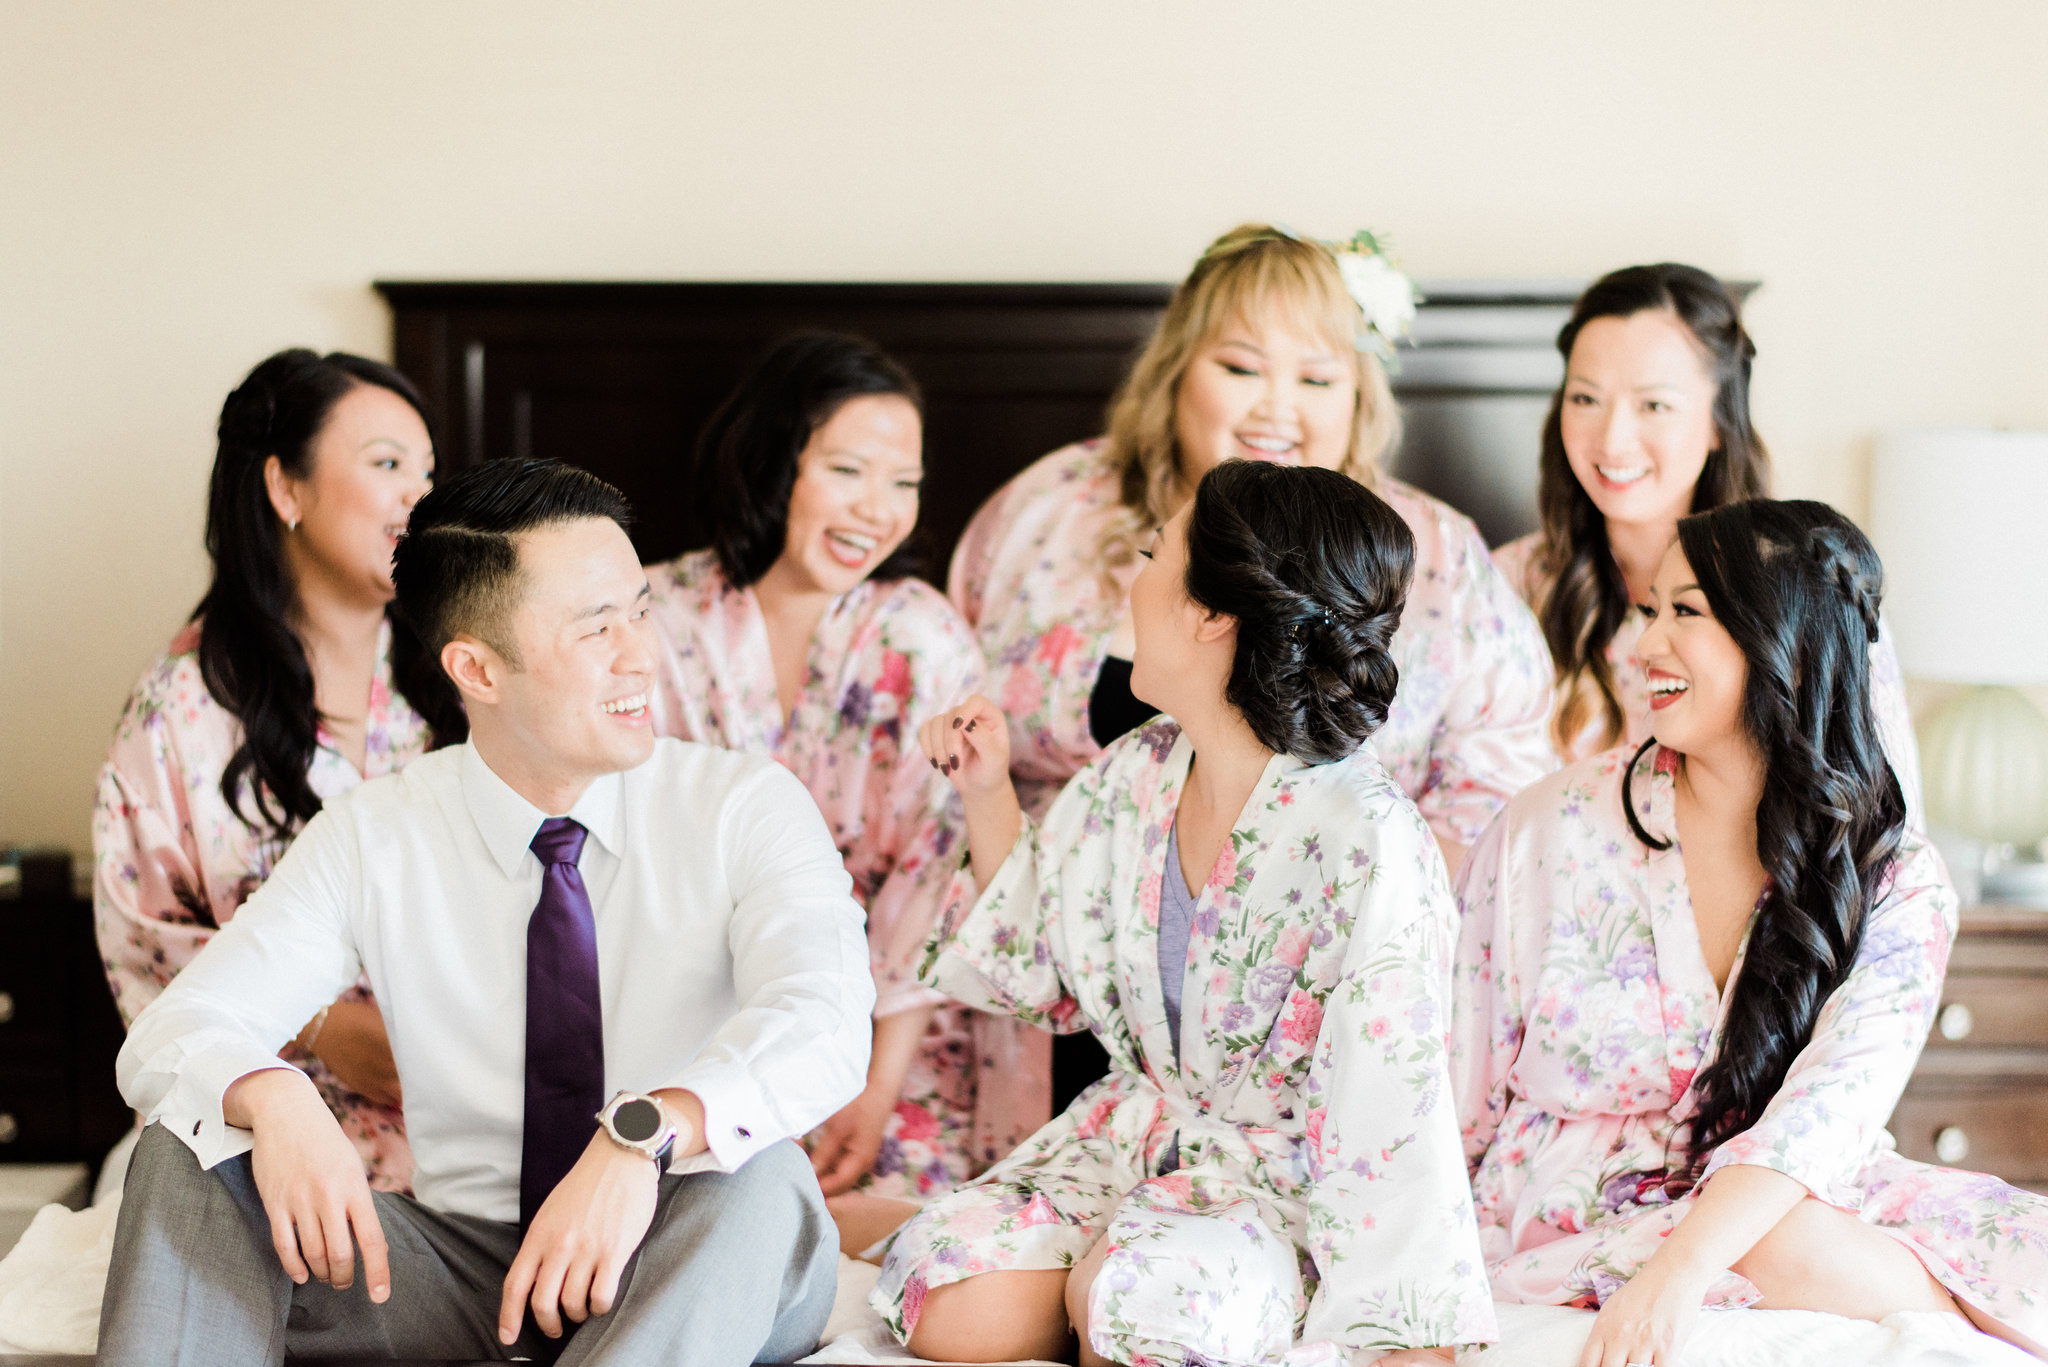 Candid Photos with Asian Bride, Husband and Bridesmaids in Floral Robes